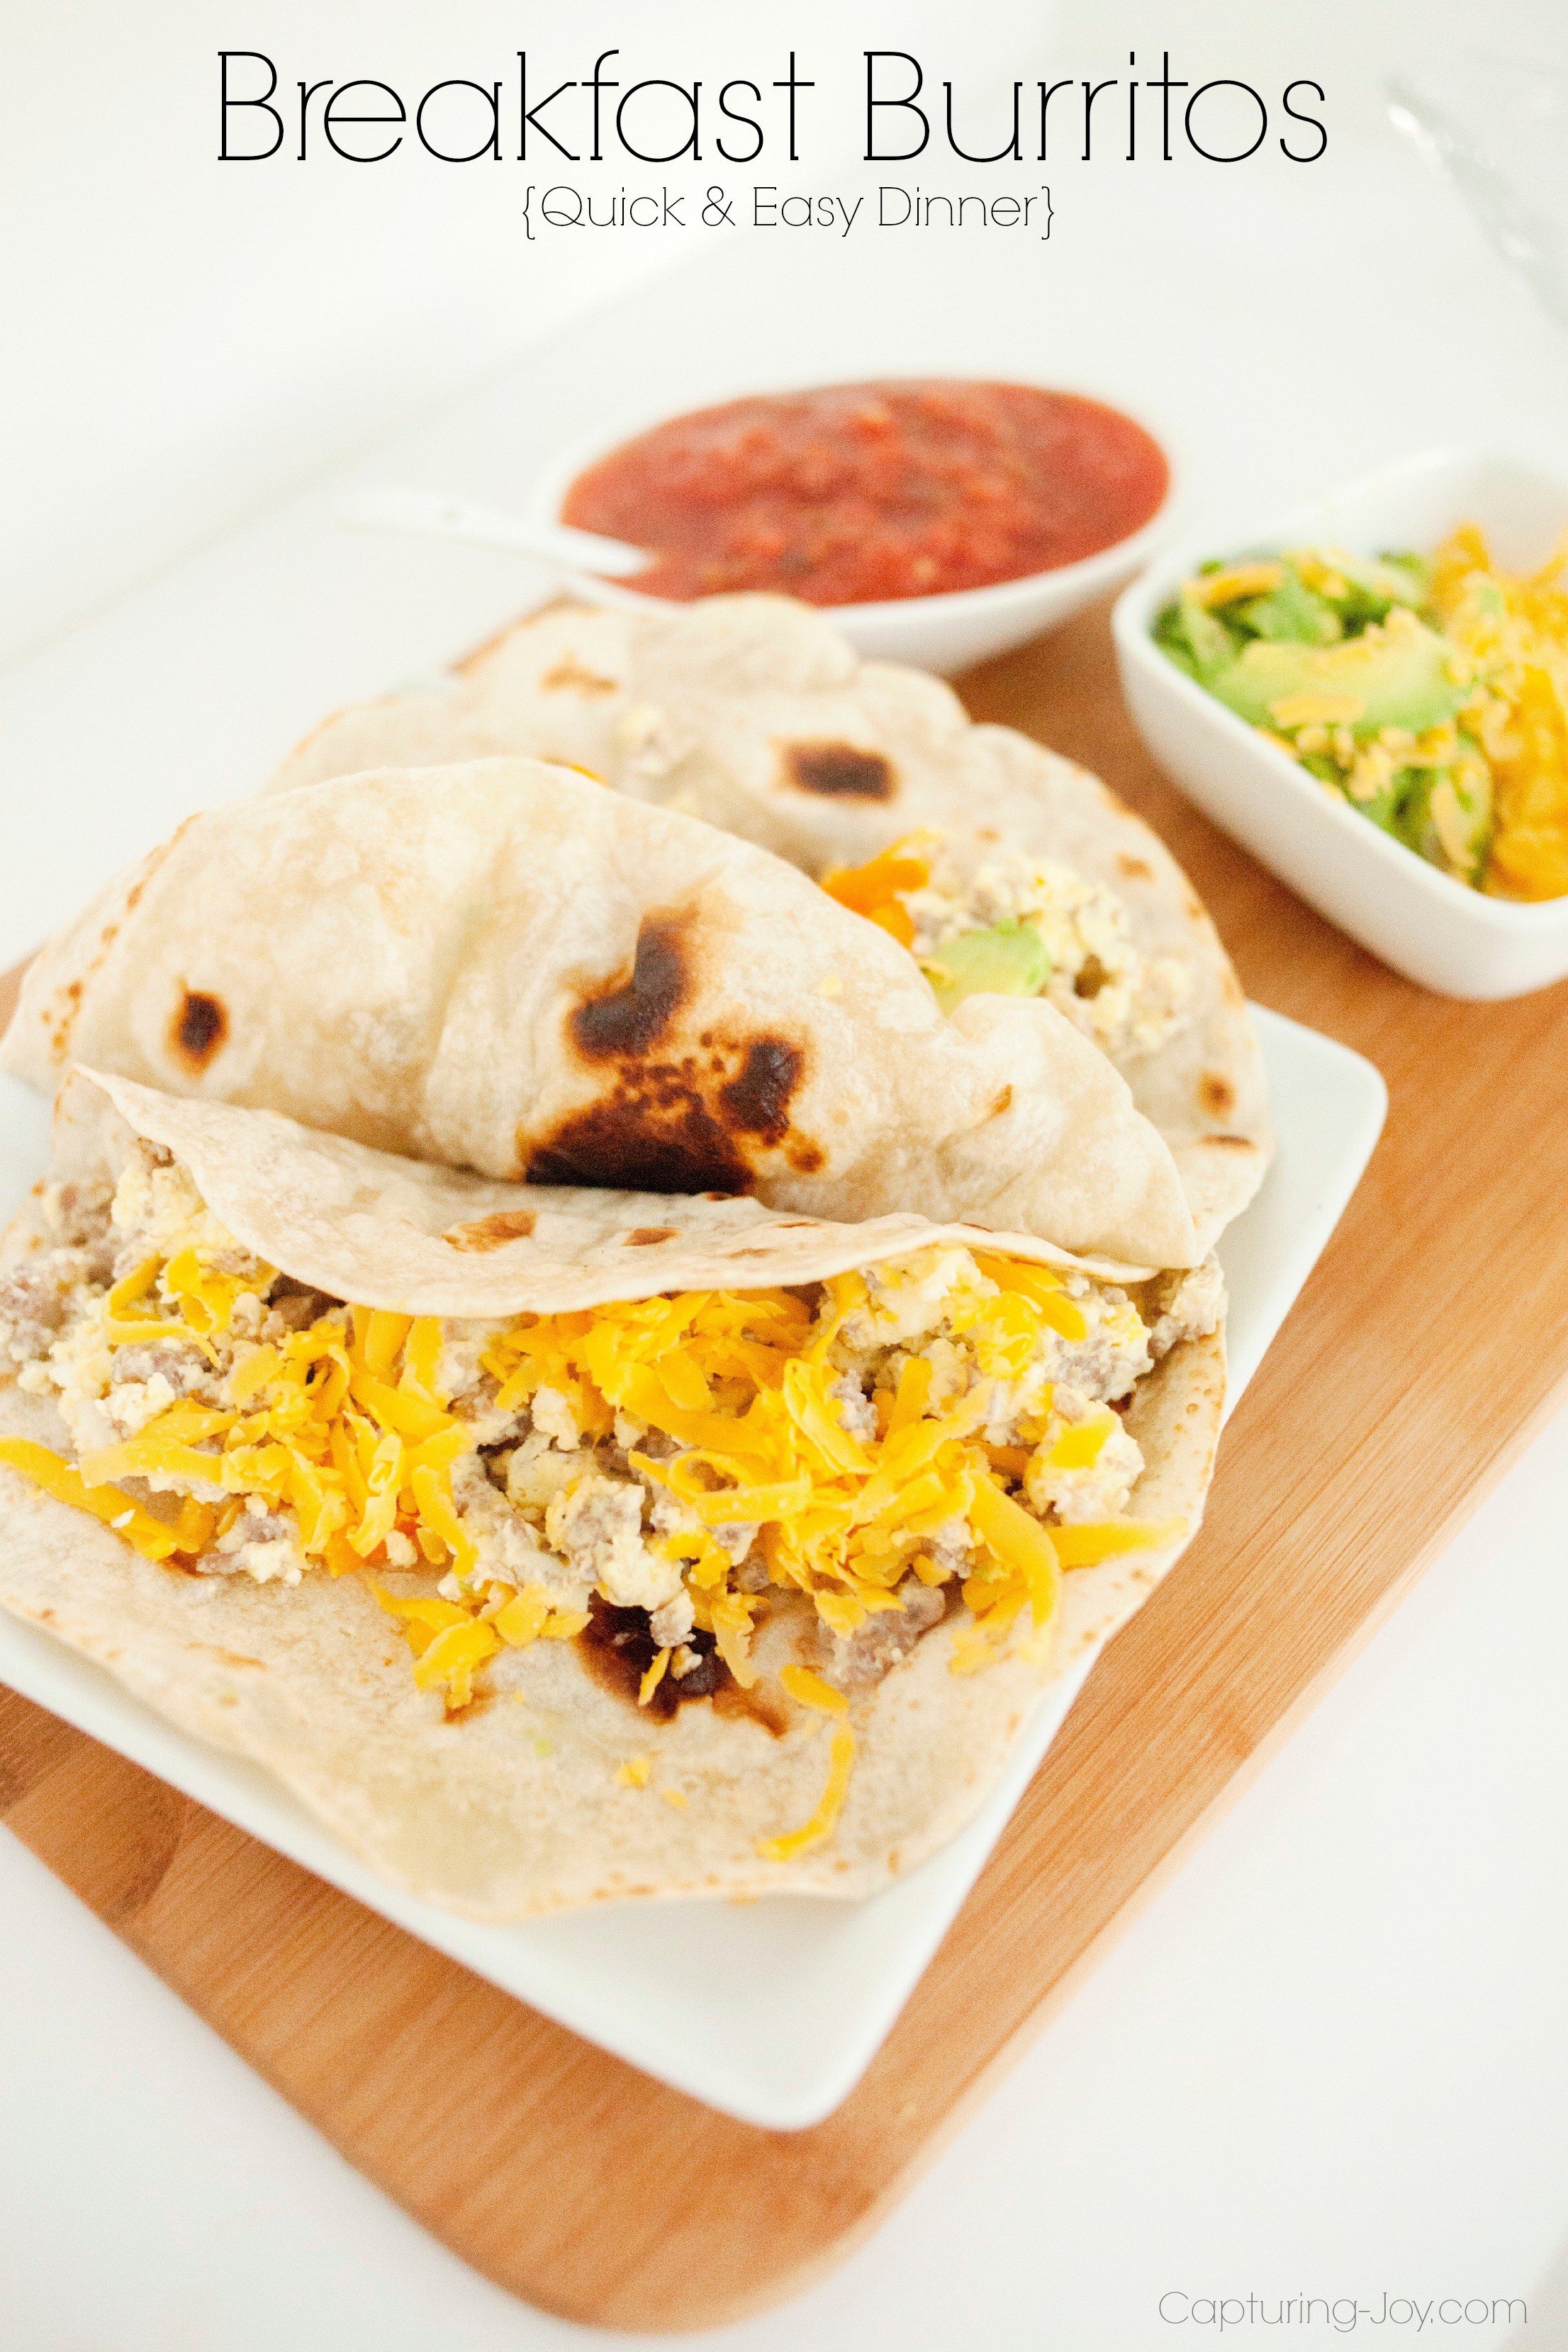 Breakfast Burritos Recipes  Breakfast Burritos for Dinner